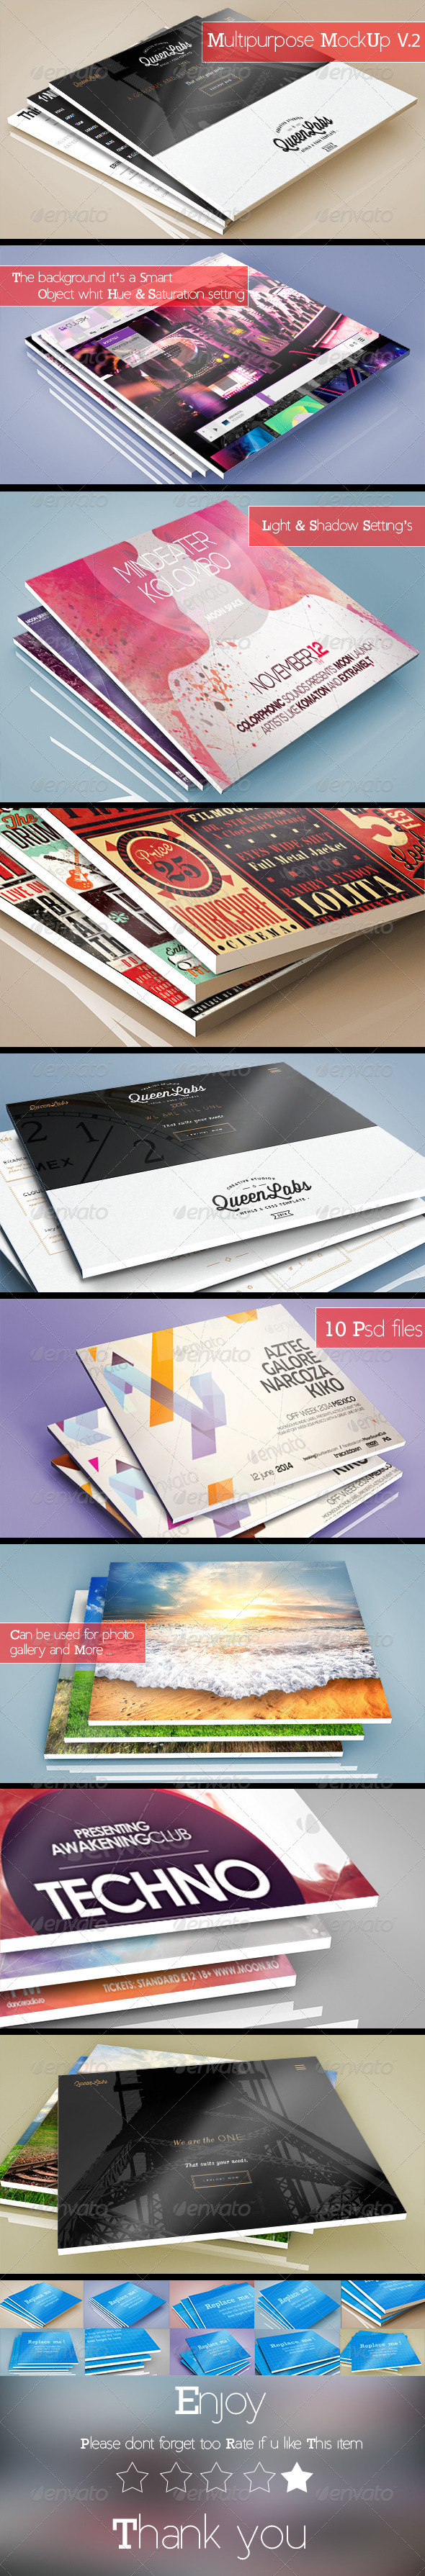 GraphicRiver 3D Multipurpose MockUp V.2 8275655